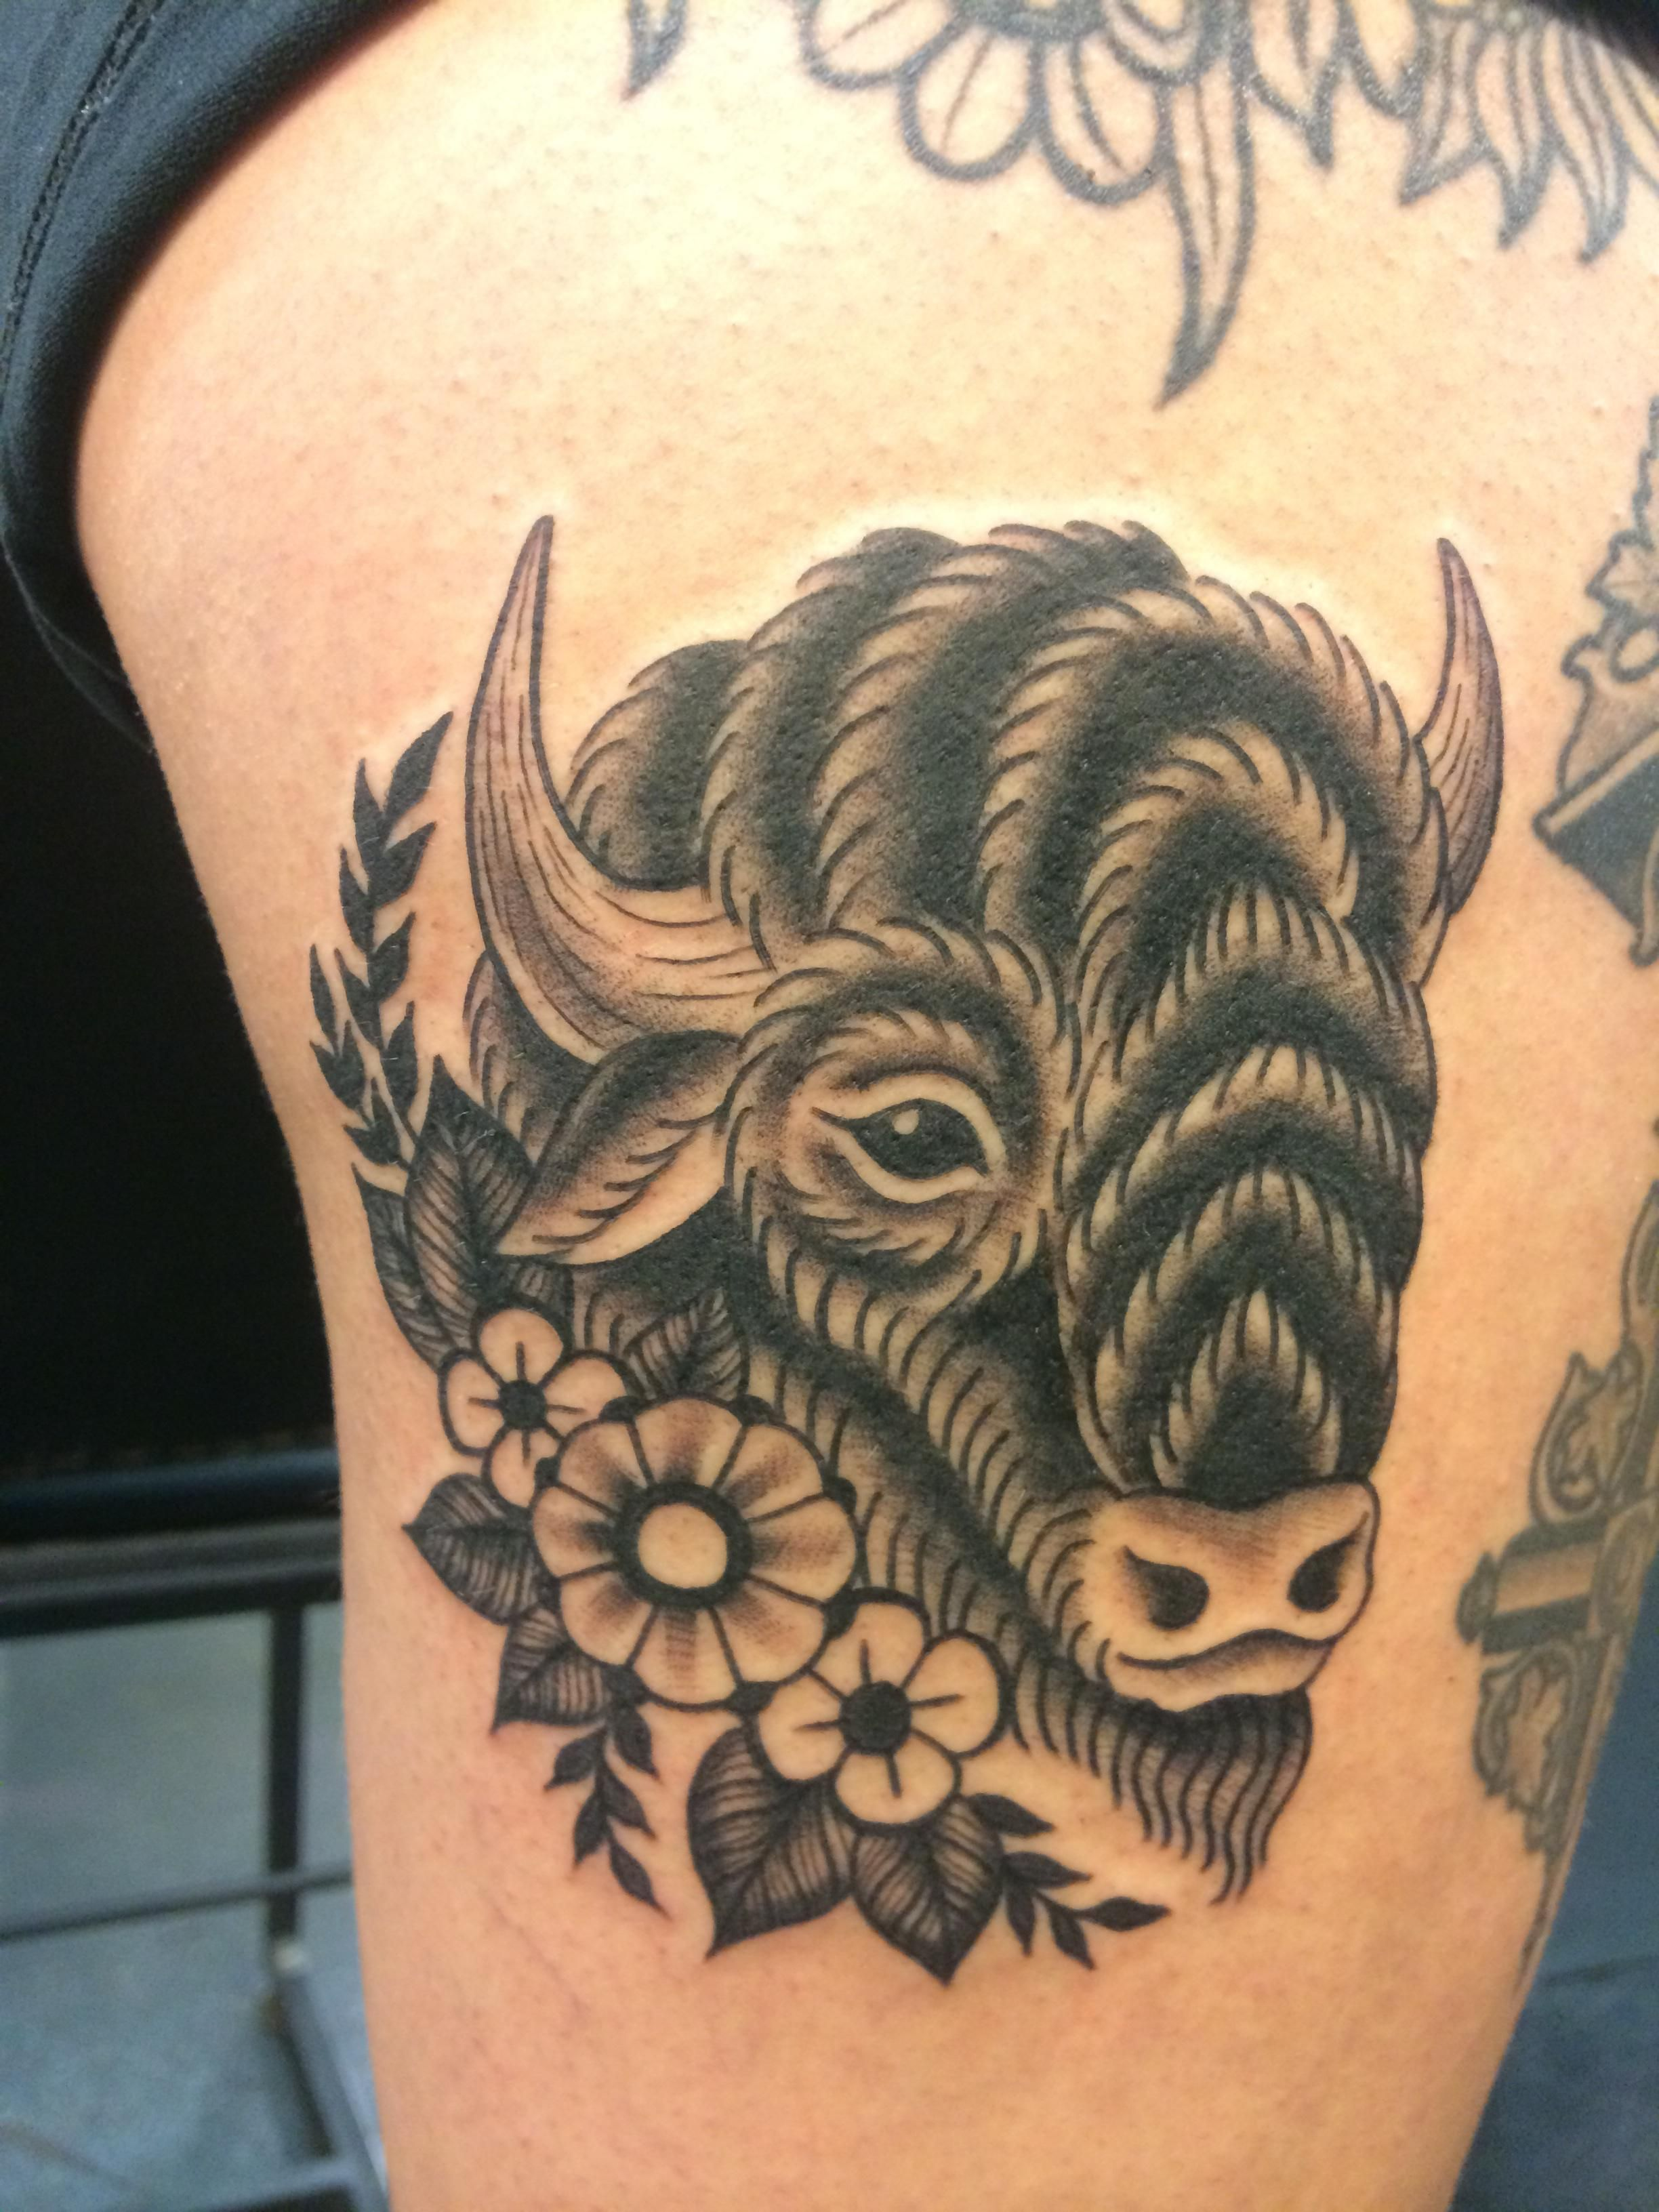 Buffalo by laura graham at lady luck tattoo portland or